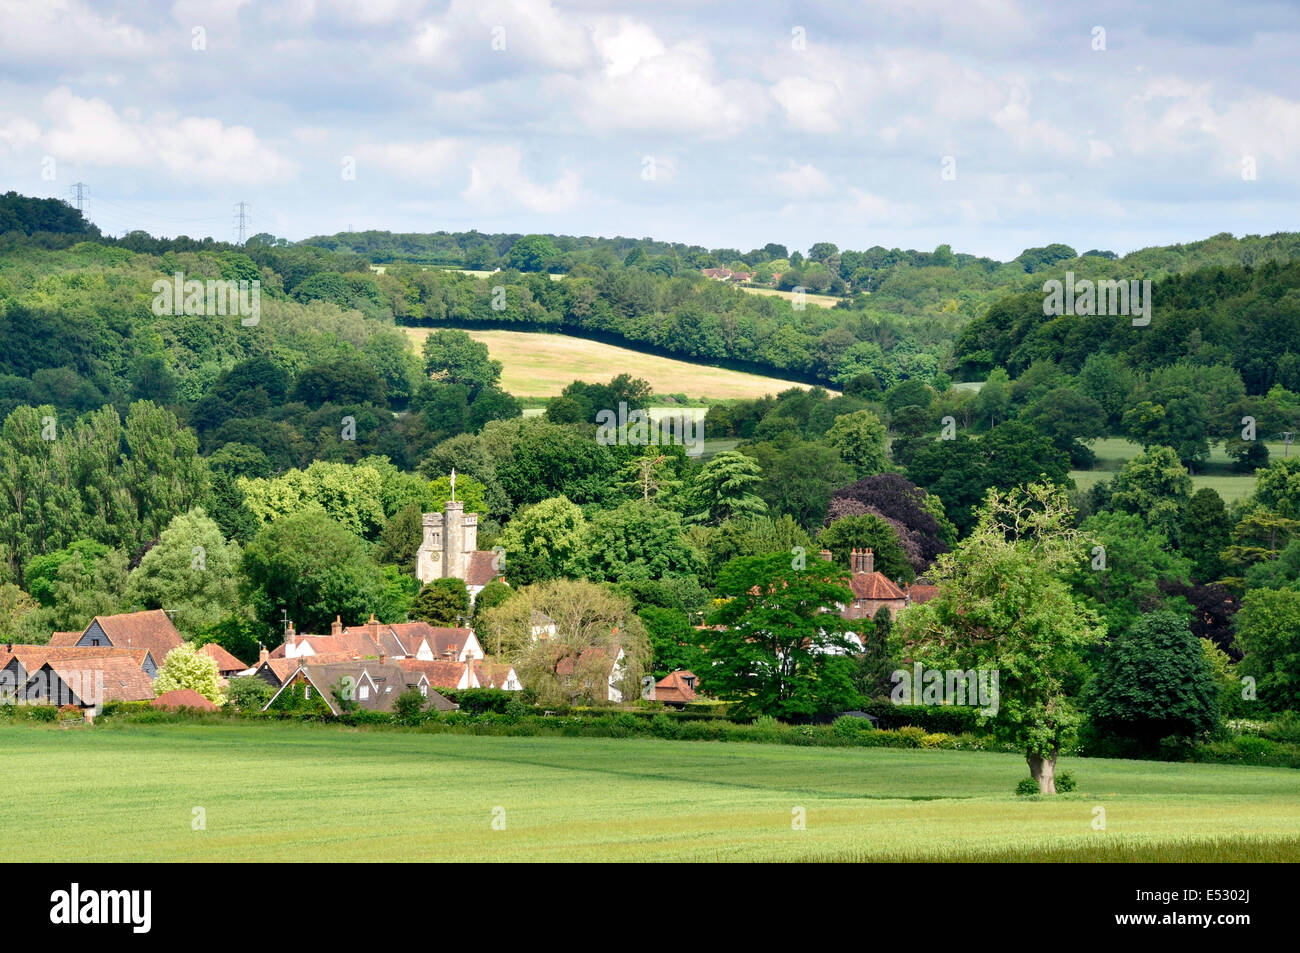 Bucks - Chiltern Hills - view Little Missenden village - Misbourne valley - cottages - church tower - woods - threat - Stock Image